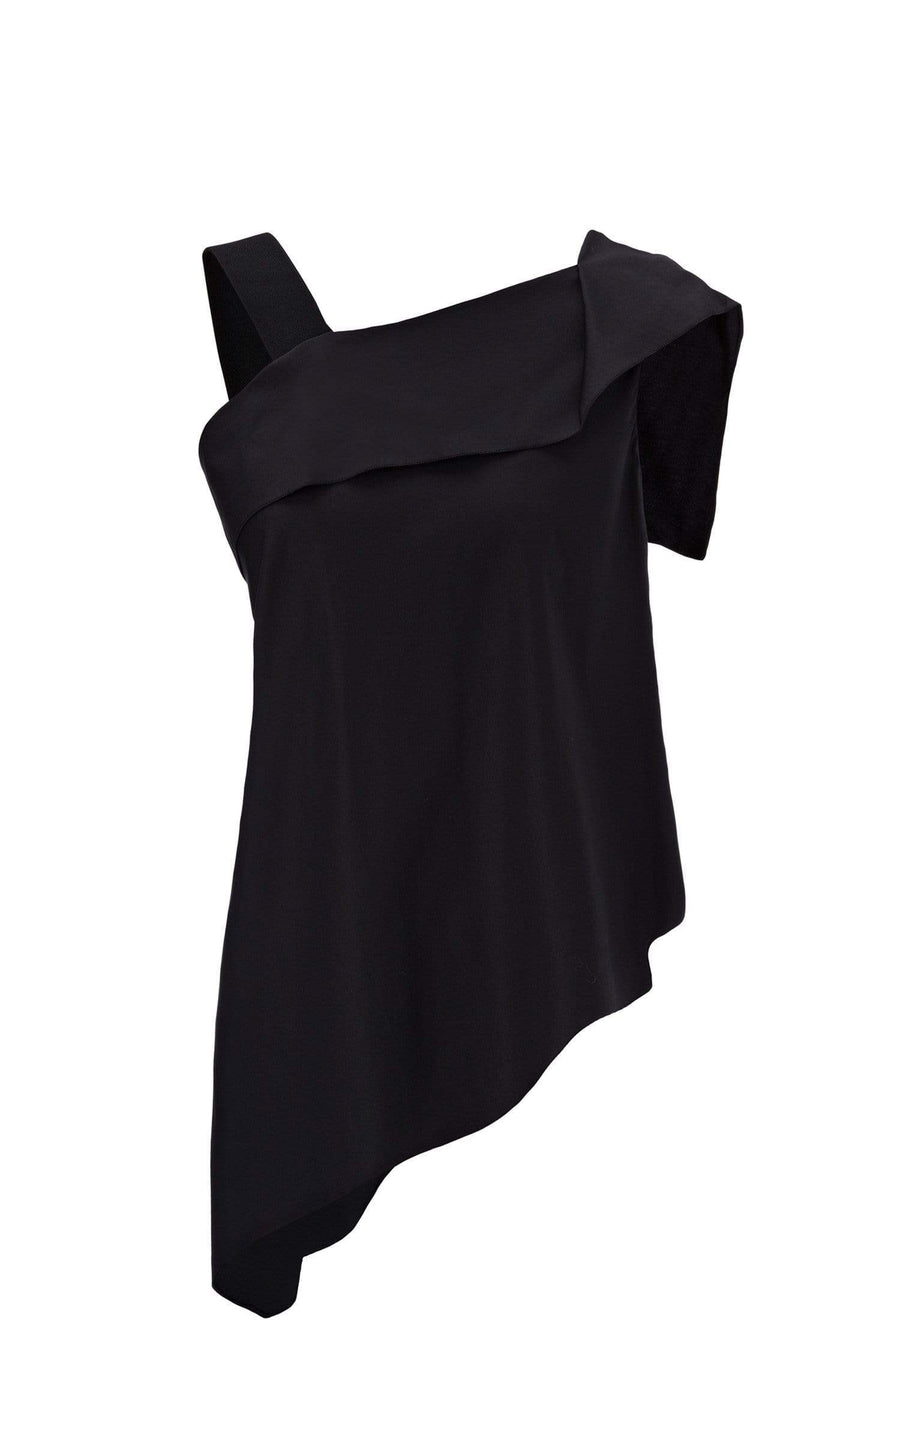 Iver Top In Black from Roland Mouret